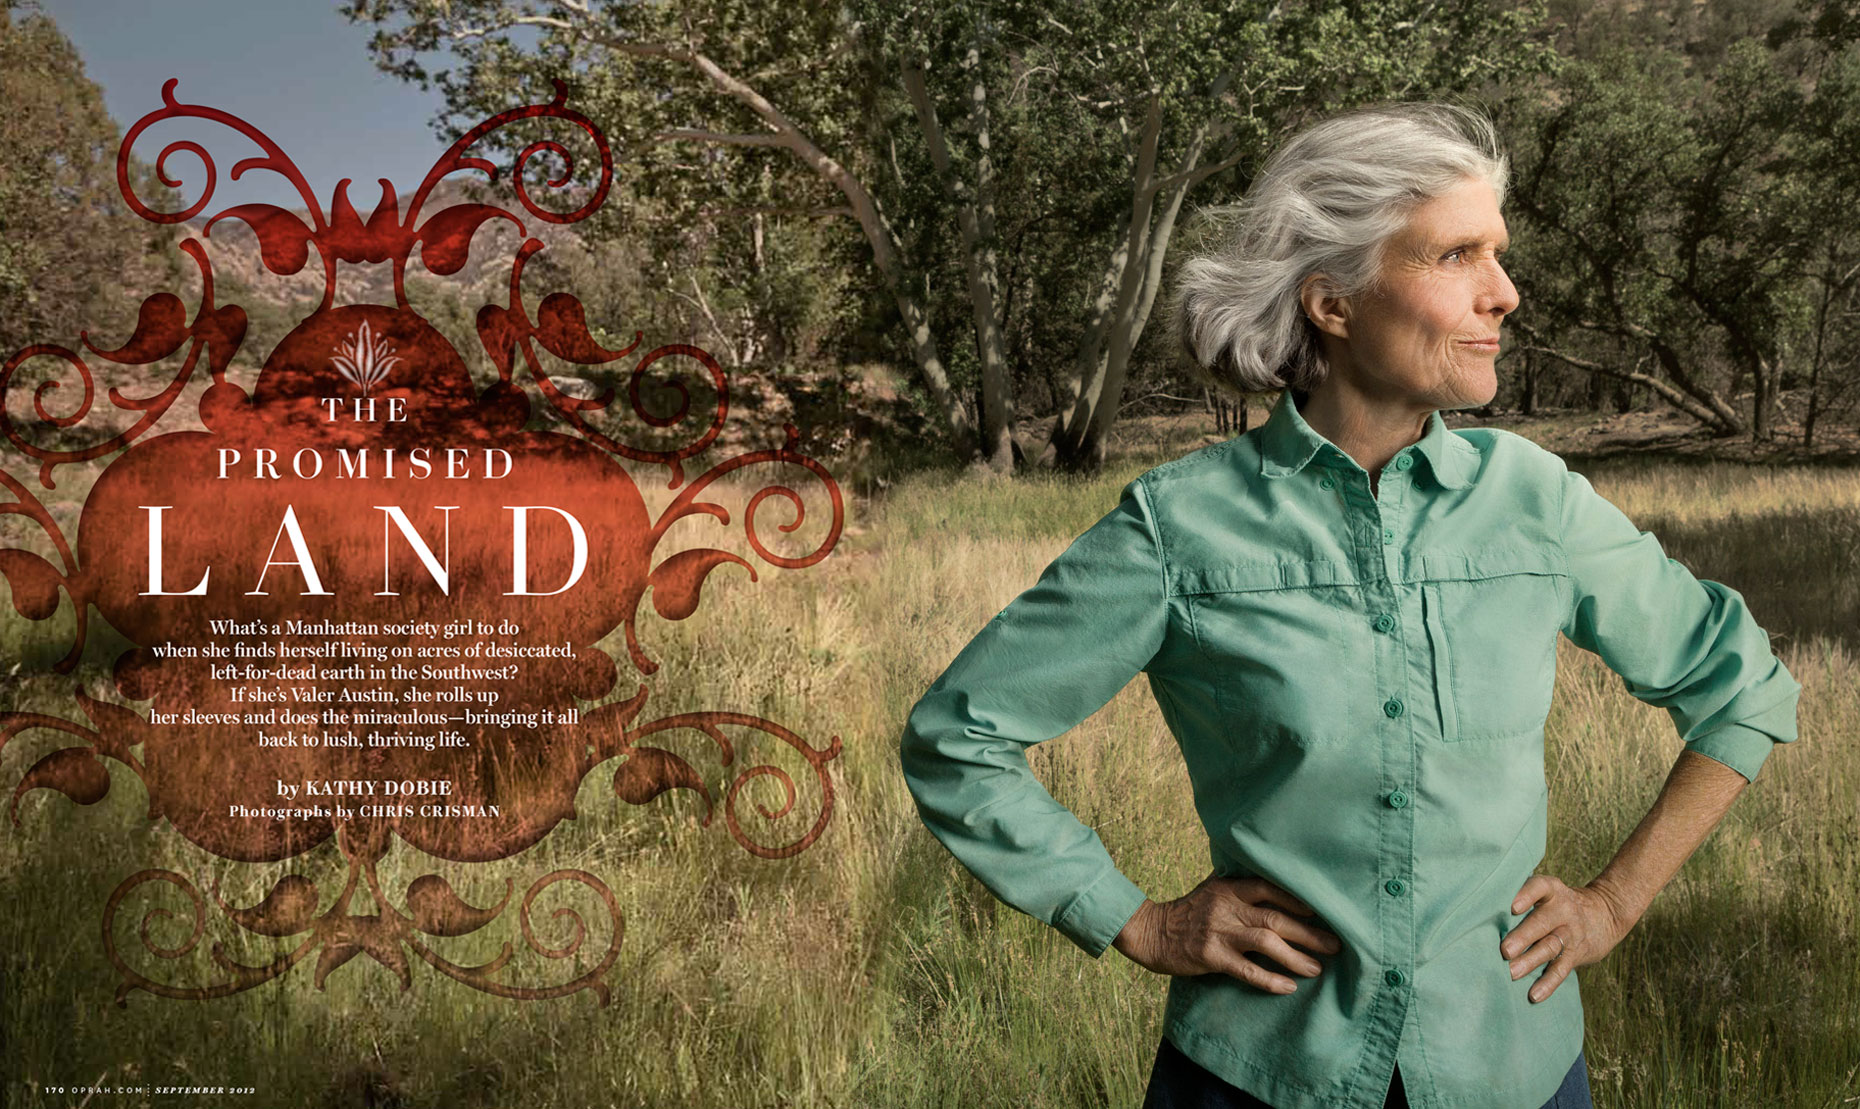 O: The Oprah Magazine: The Promised Land feature: VALER AUSTIN. September 2012 issue